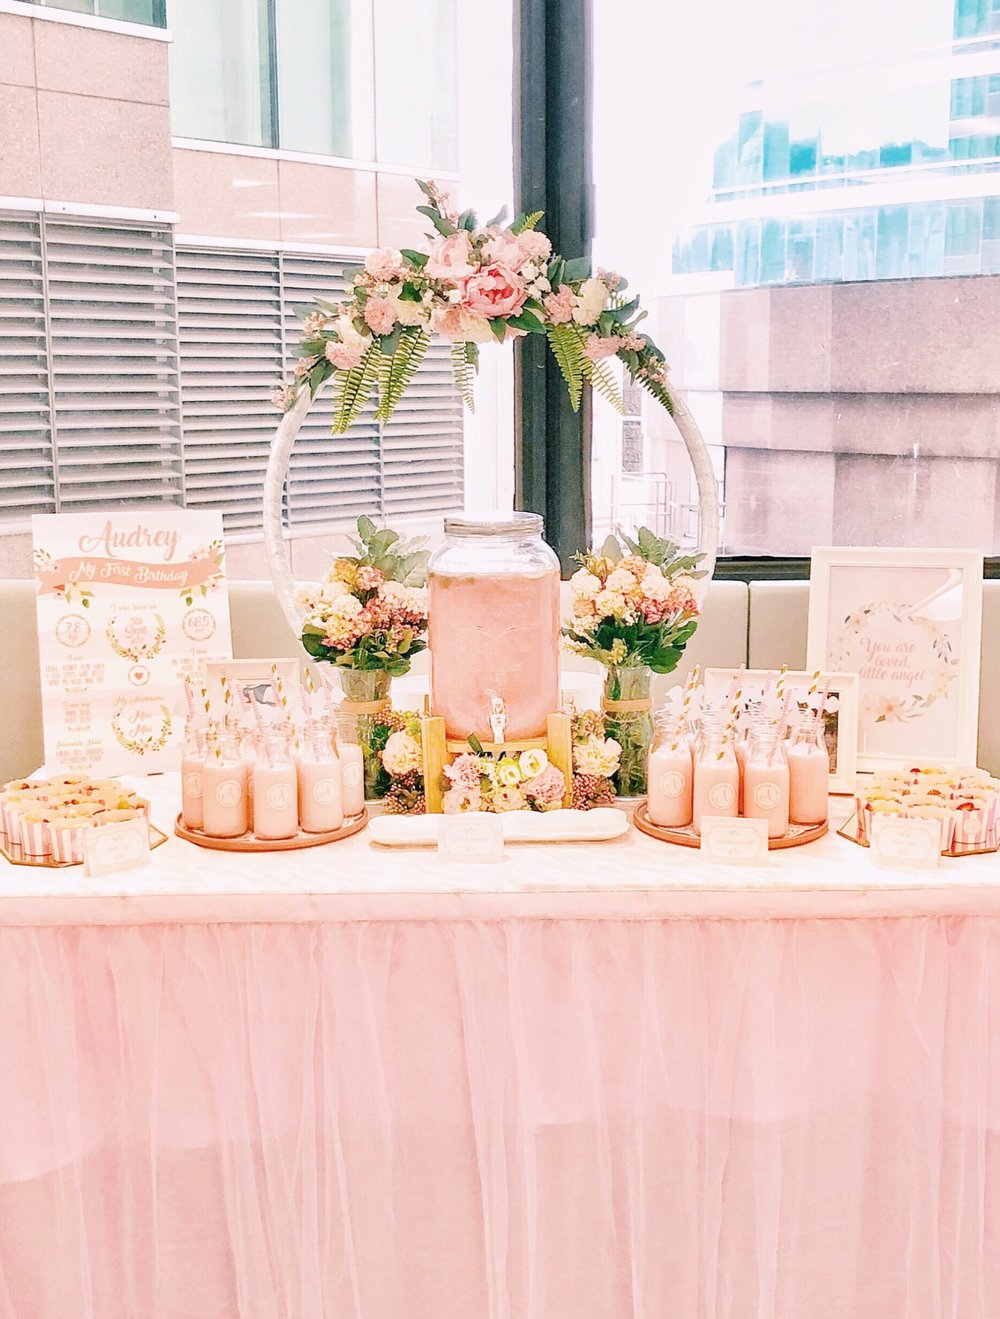 - Our drinks and fruit table was equally amazing with this amazing floral wreath and accents. We had monogrammed bottles with strawberry milk, a large pink lemonade tap surrounded by florals, and monogrammed fruit cups for the little ones. We displayed a framed print and Audrey's milestone board as well.